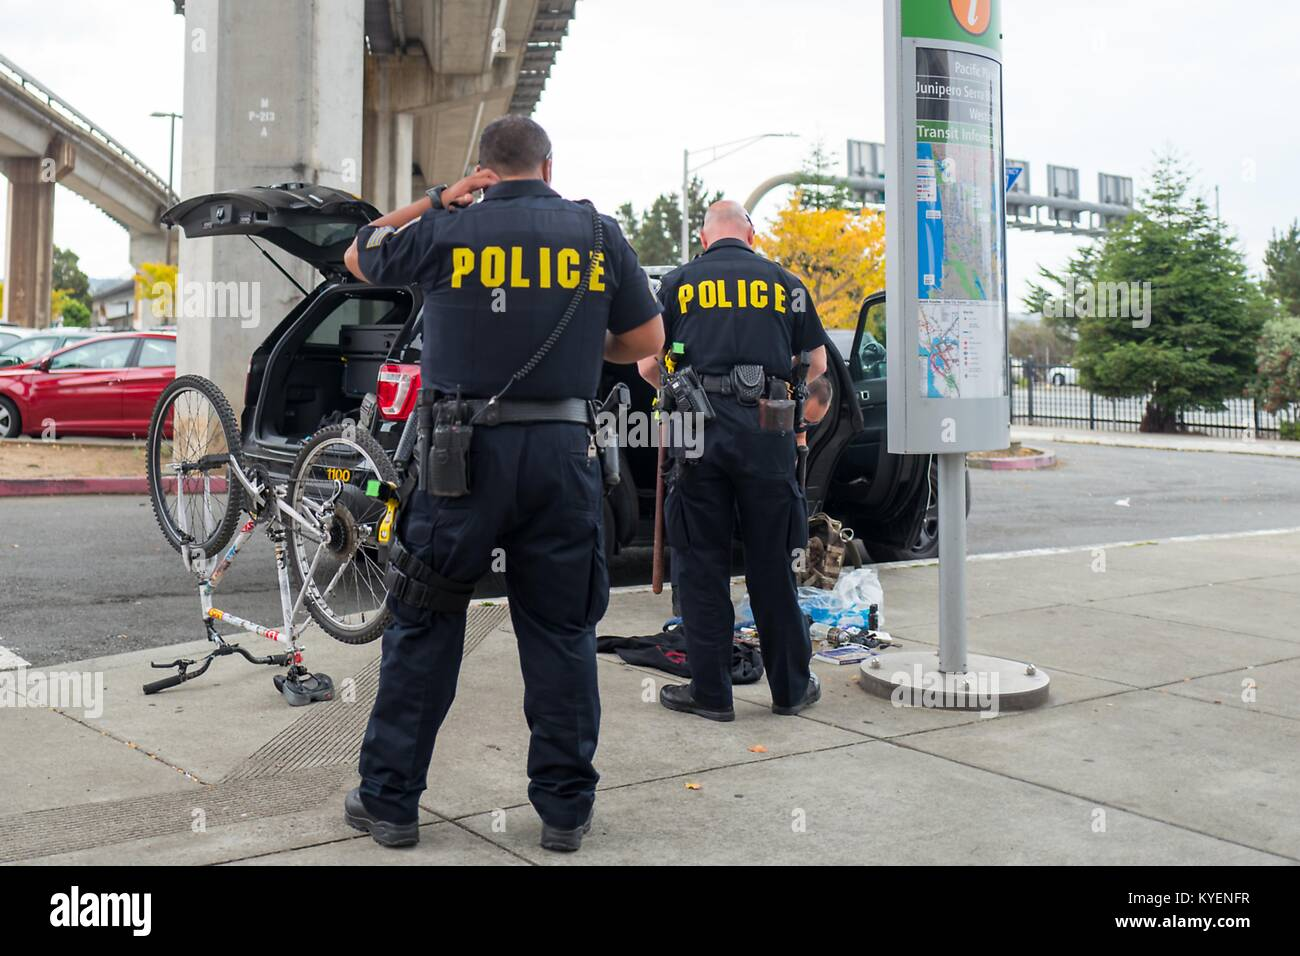 Two Bay Area Rapid Transit (BART) police officers are viewed from behind, with an overturned bicycle and bag with - Stock Image